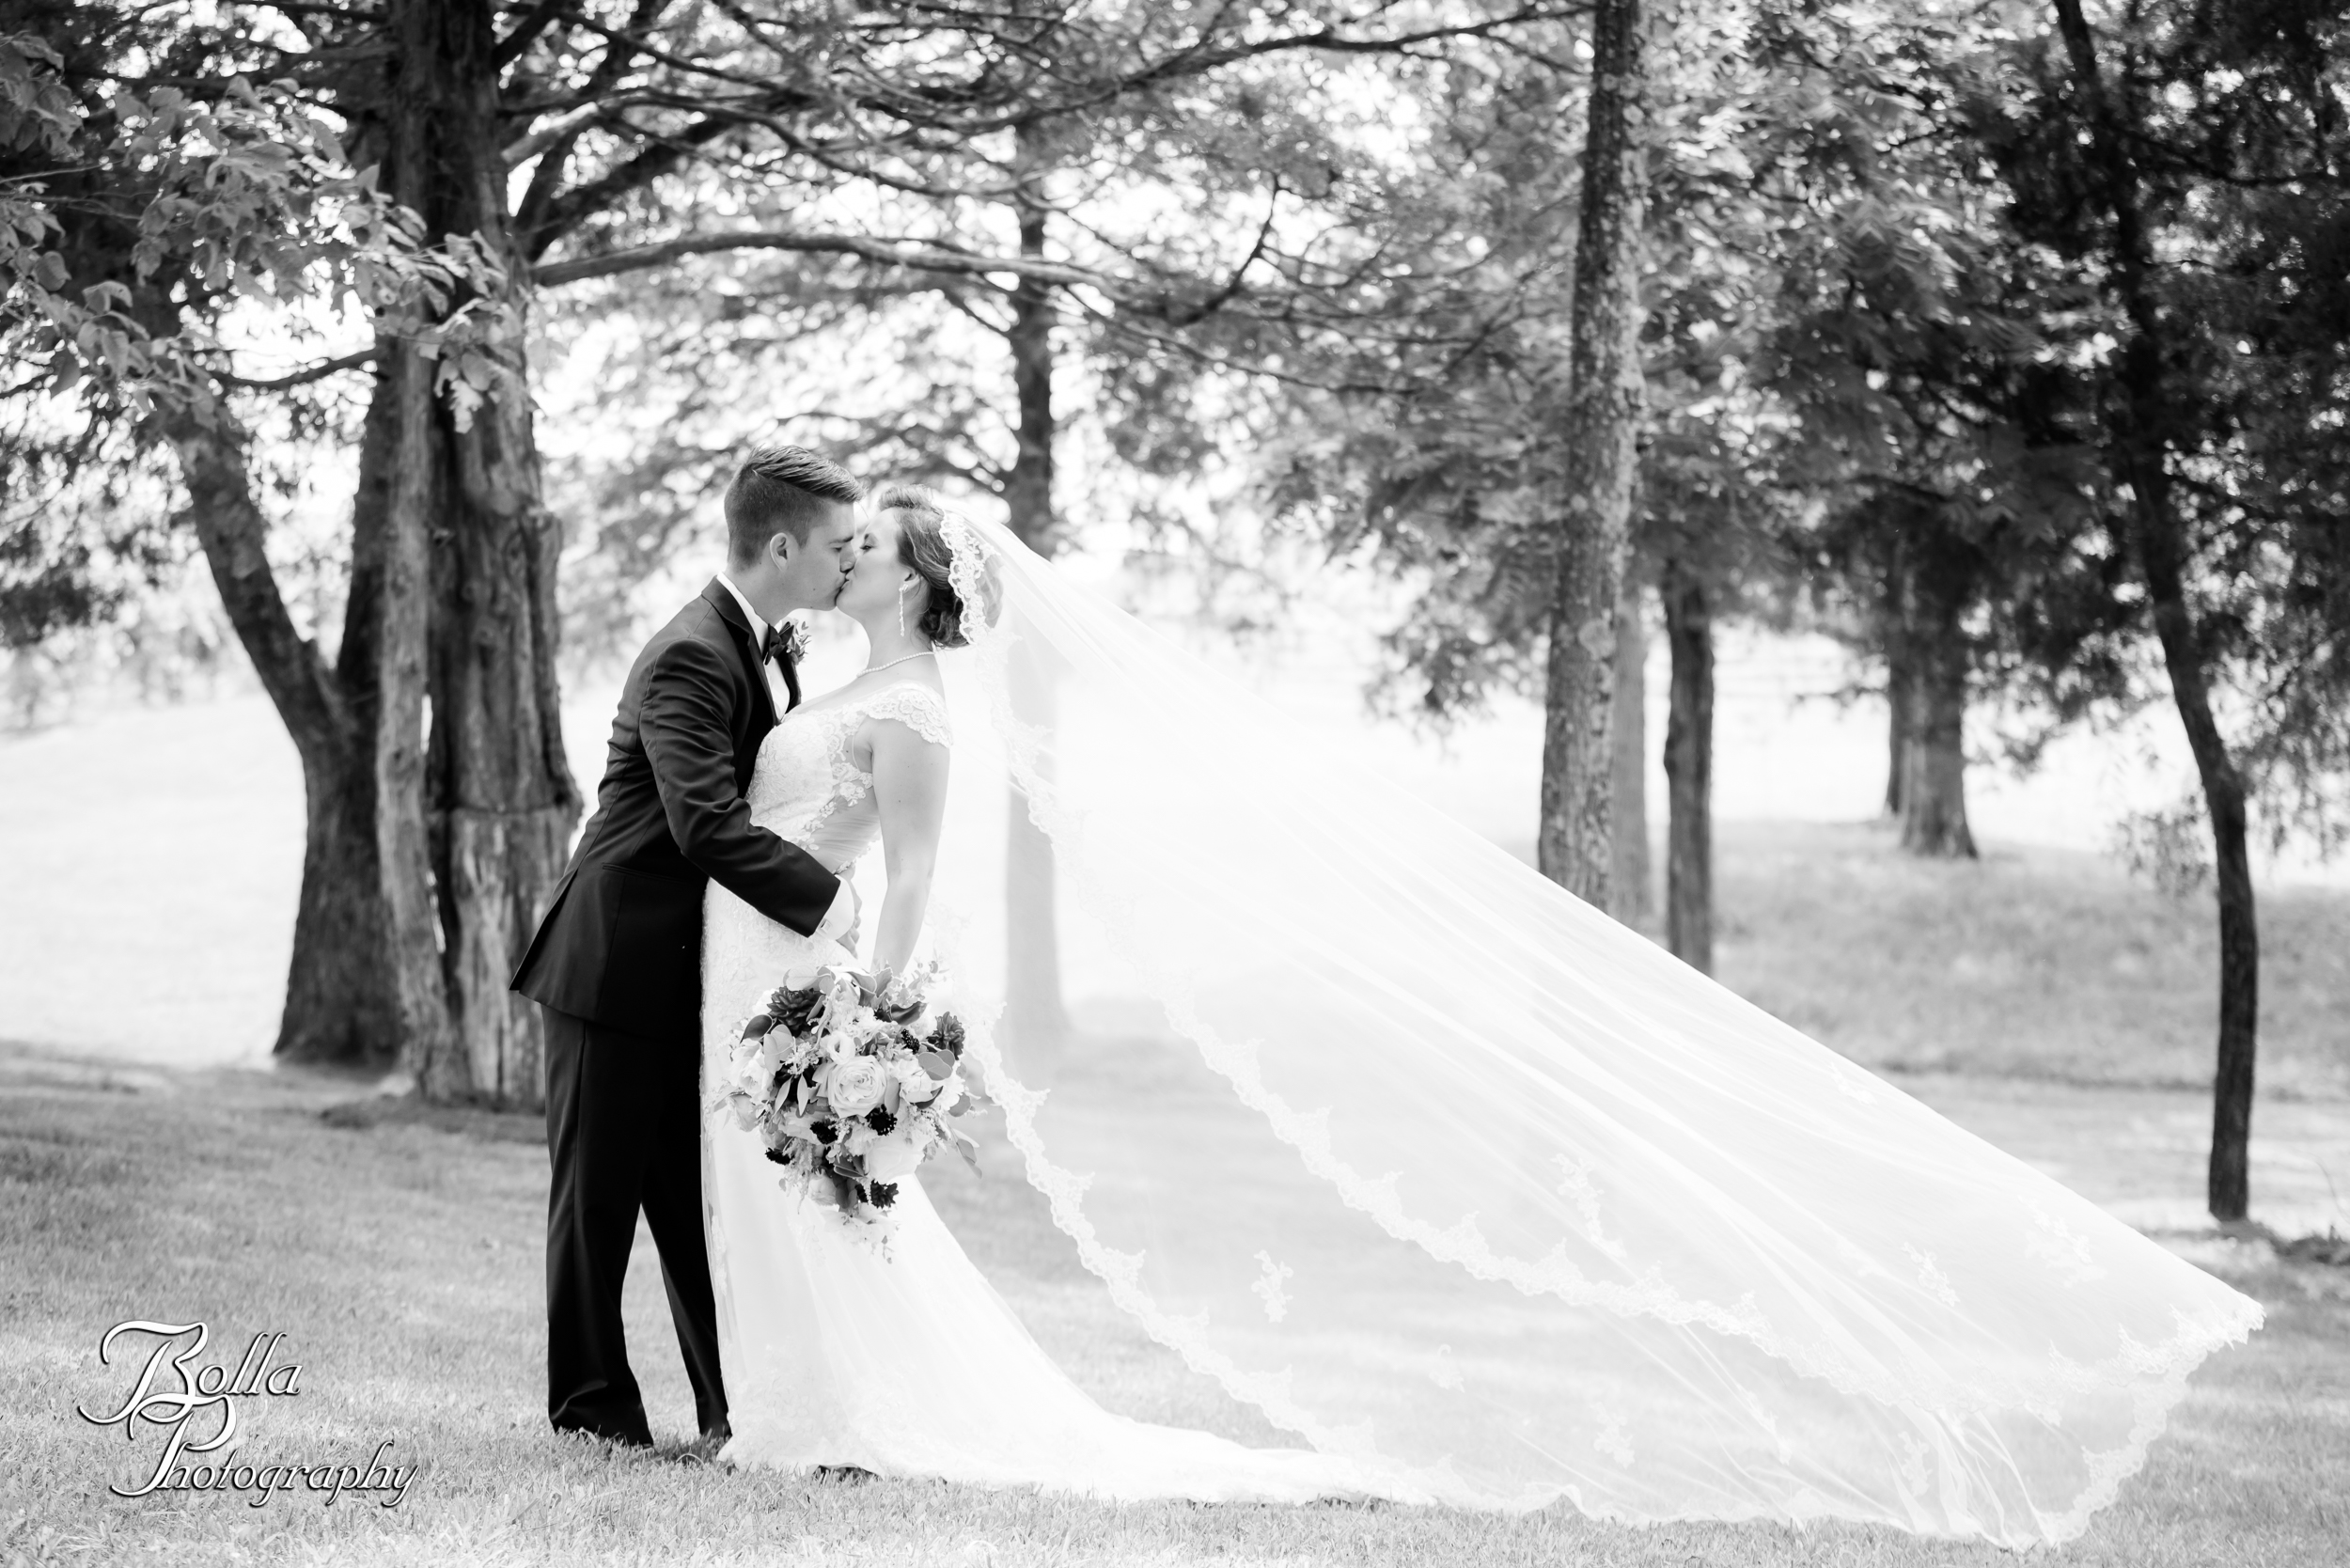 Bolla_photography_edwardsville_wedding_photographer_st_louis_weddings_Chaumette_winery_Mikusch-0249.jpg